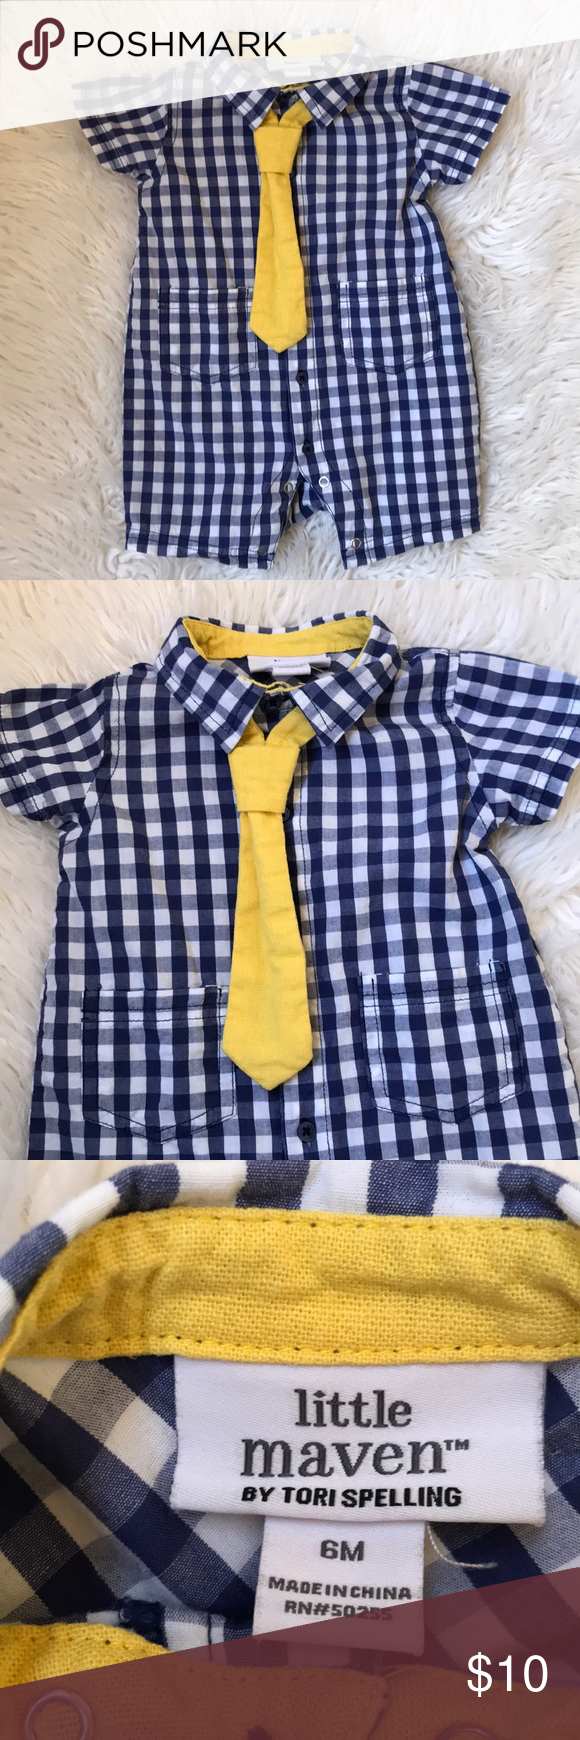 Little Maven Gingham Romper with Snap on Tie Little Maven by Tori